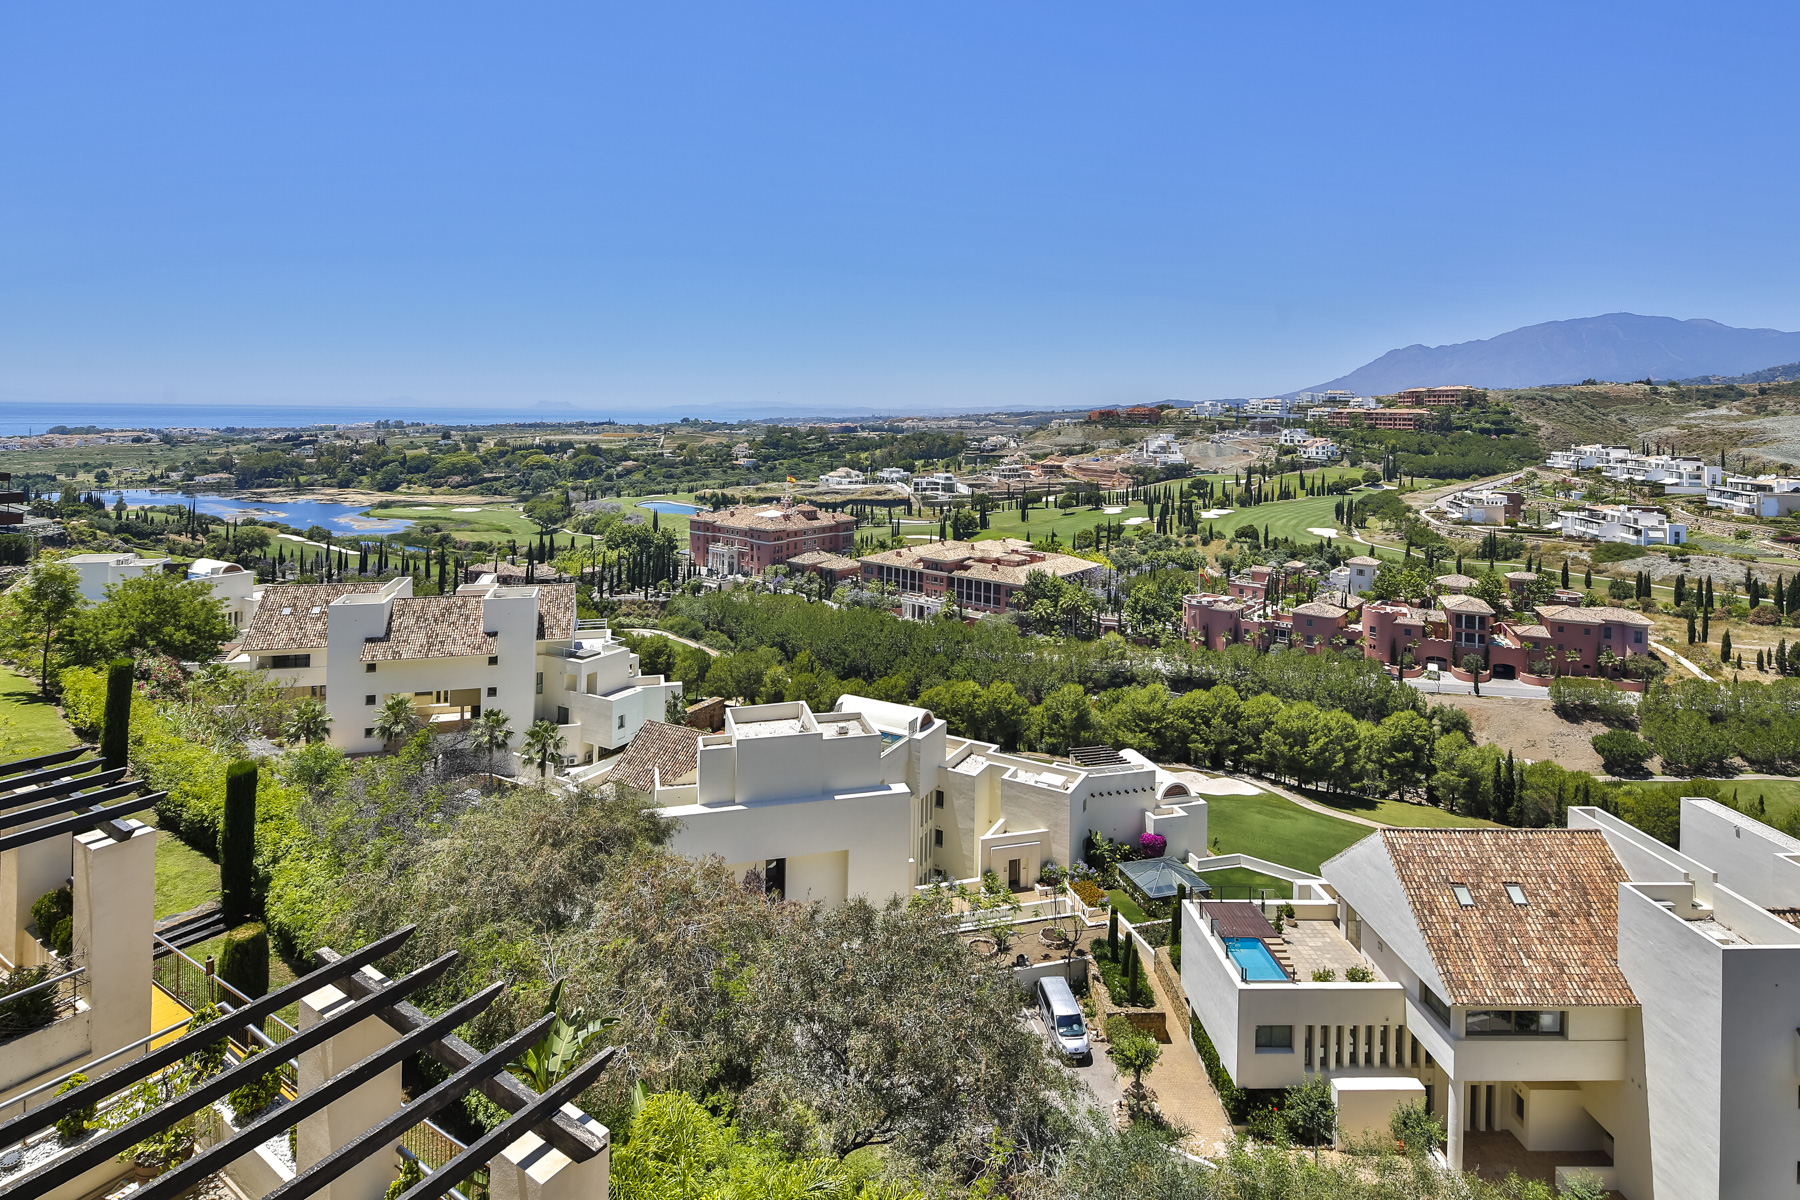 Apartment for Sale in Acosta los Flamingos, Benahavis